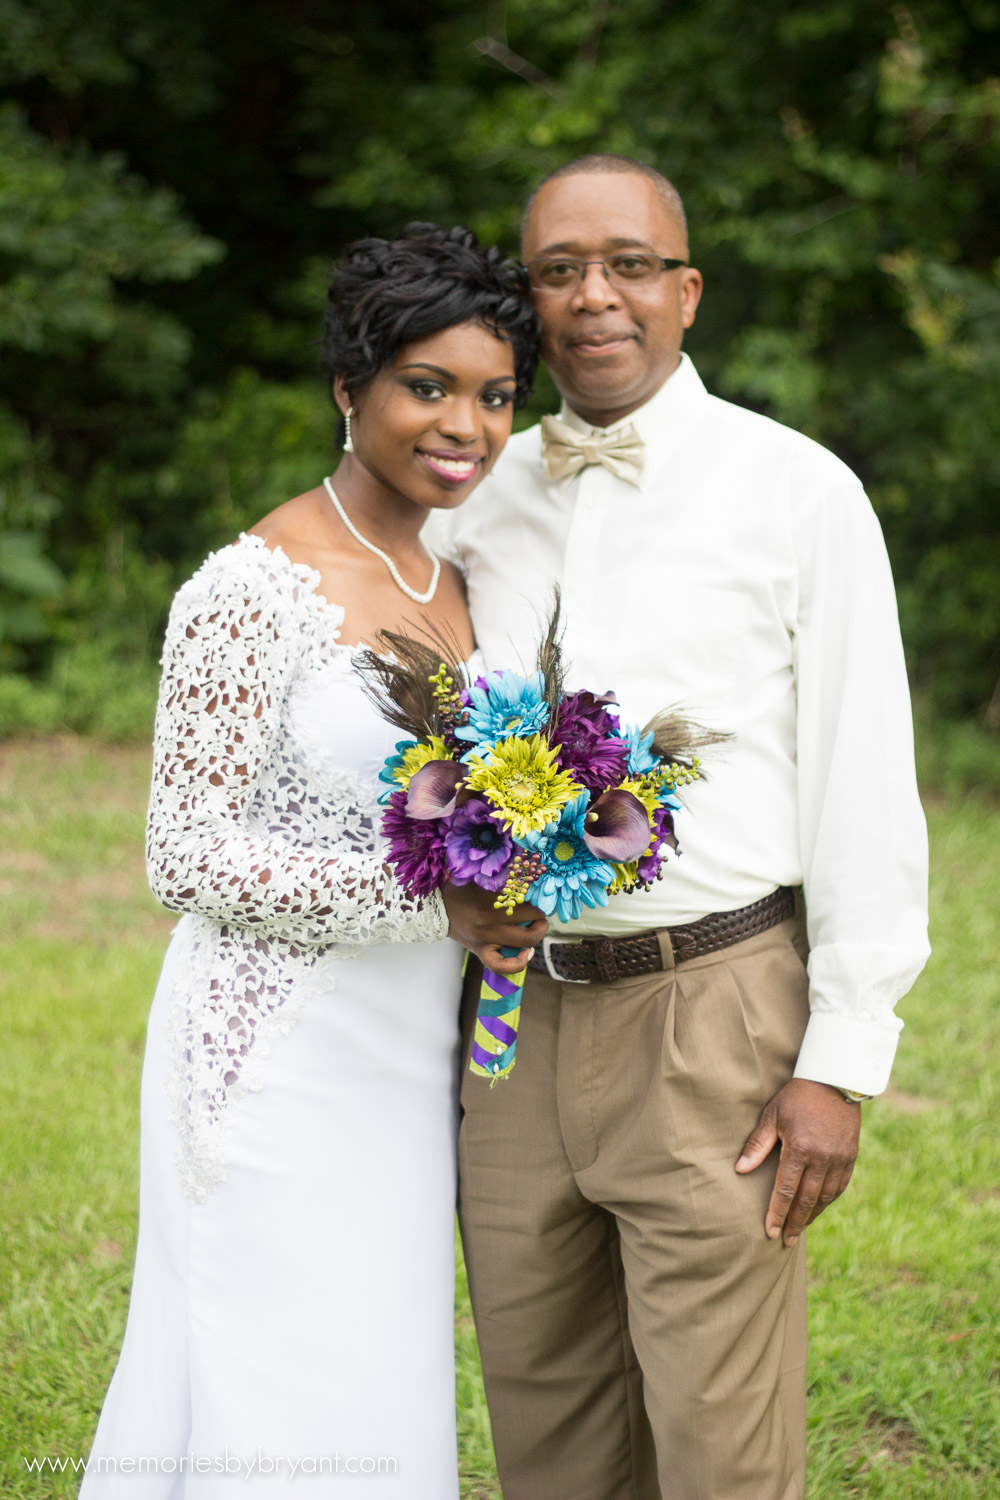 bryant-tyson-photography-greenville-nc-wedding-photographer